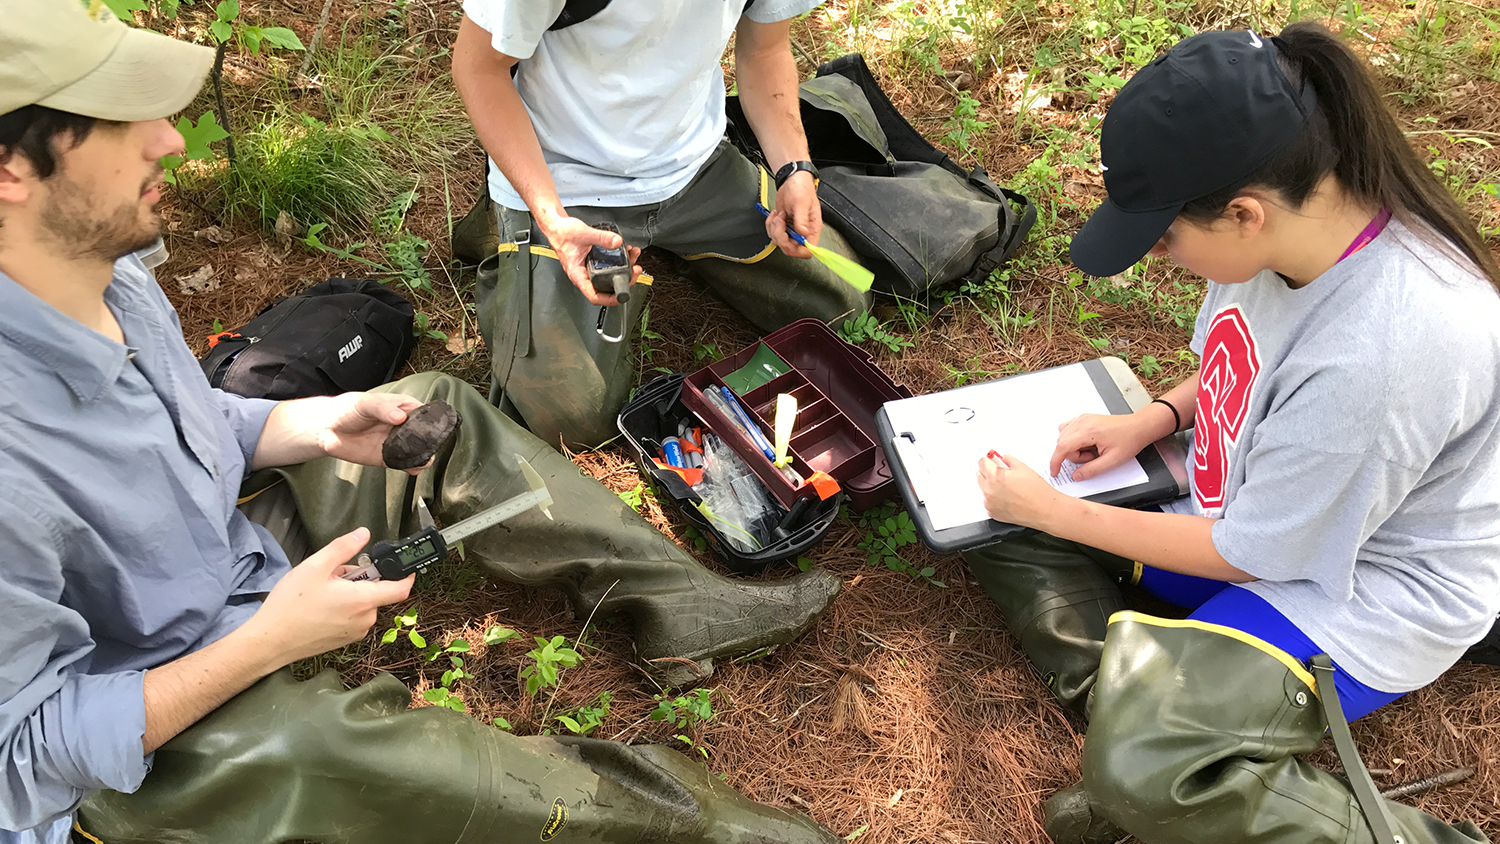 Doris Duke Group researching Bog Turtles